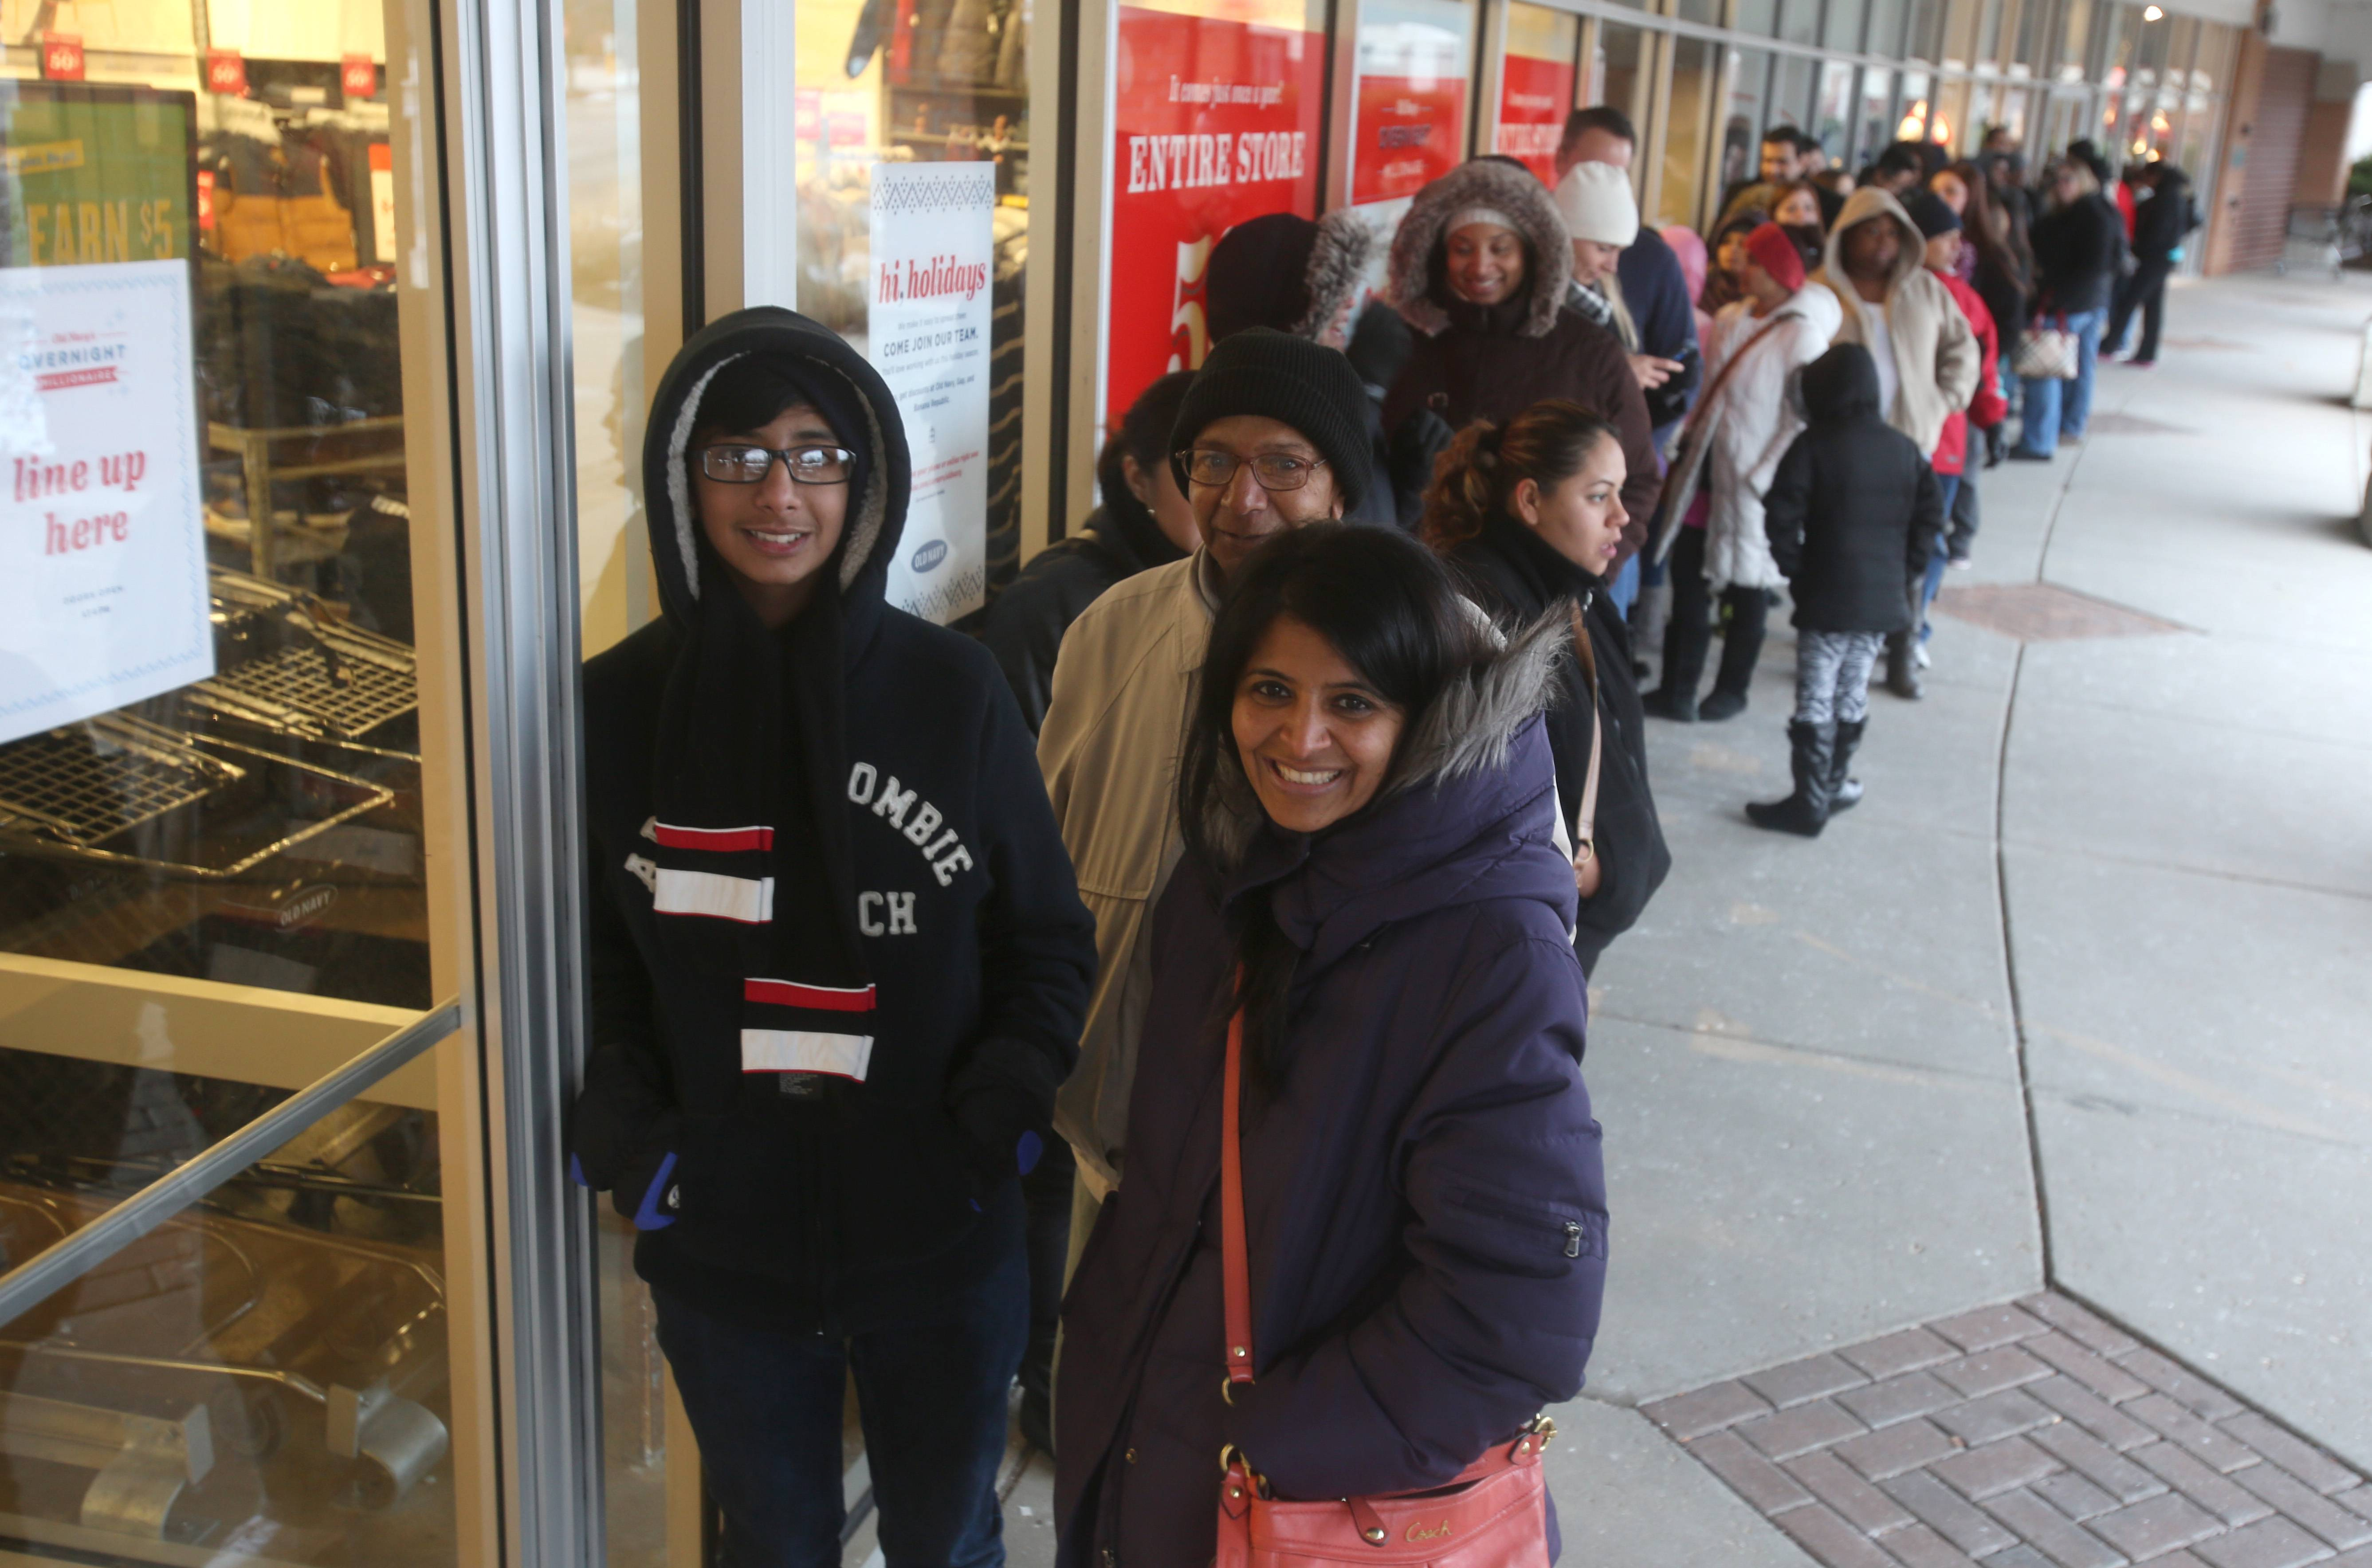 Prafula Patel of Hoffman Estates and her family are first in line Thanksgiving Day to get 50 percent off merchandise at the Old Navy Store in Schaumburg.